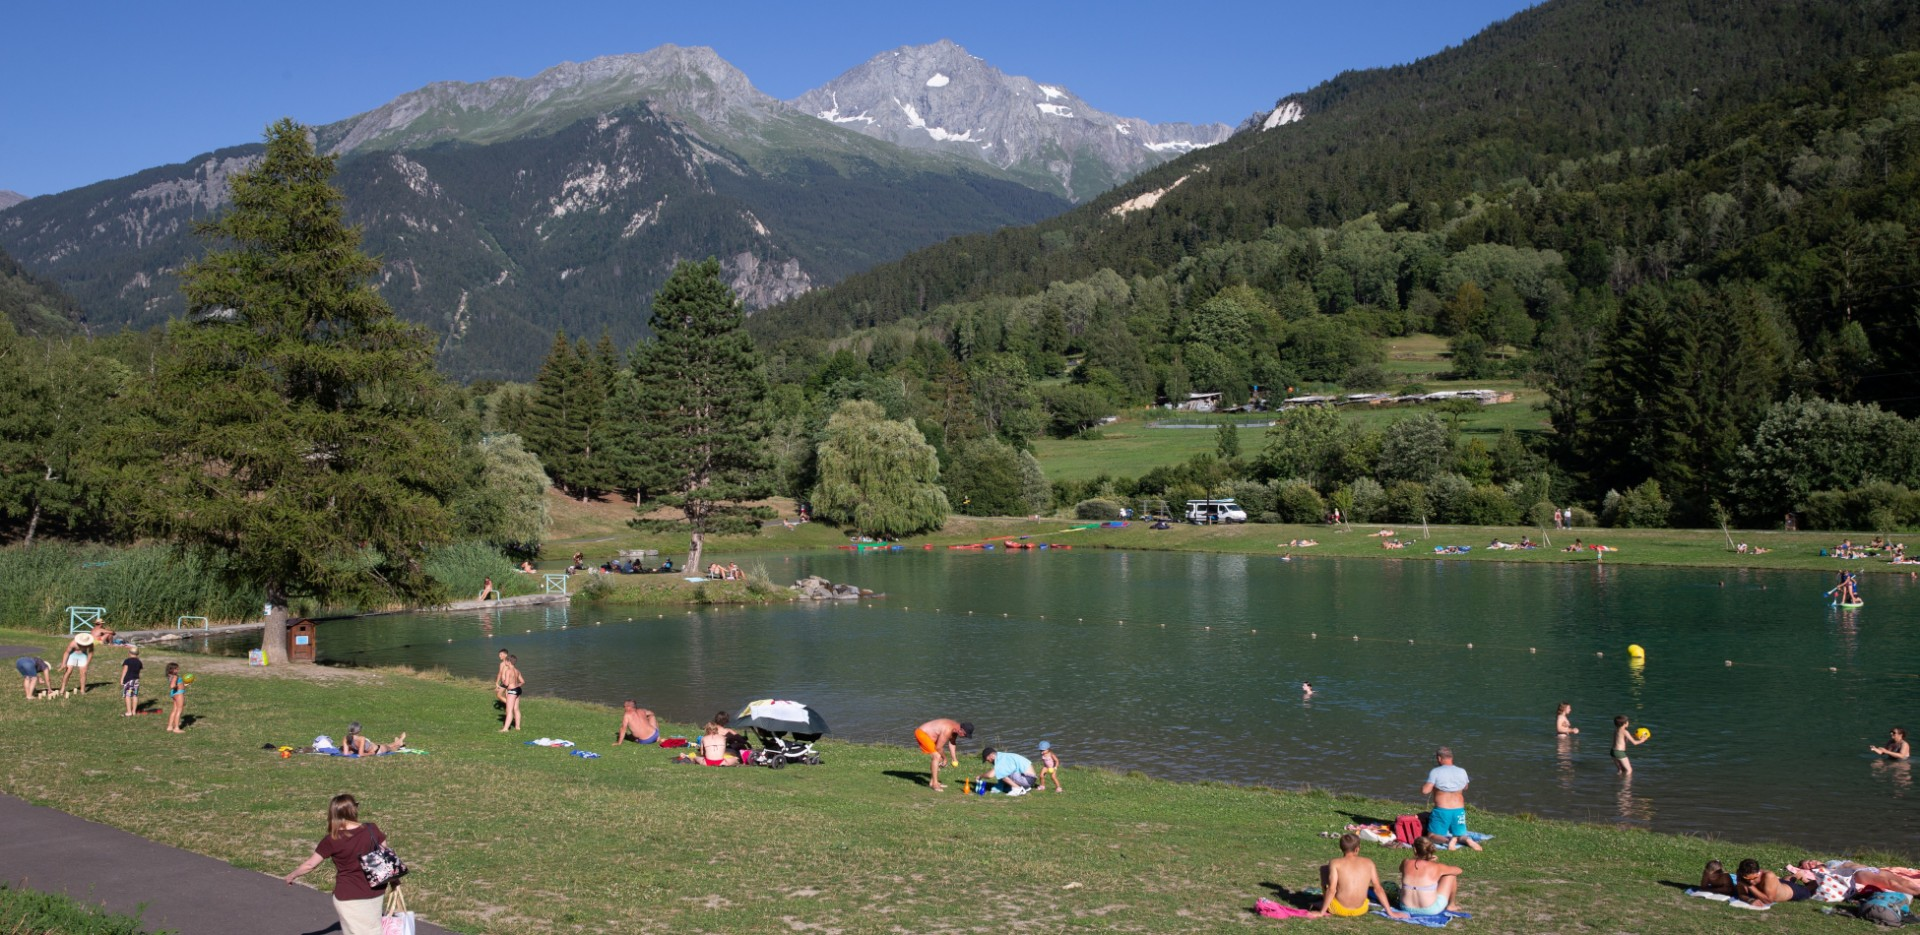 Swimming, activity, relaxation - Bozel's Valley